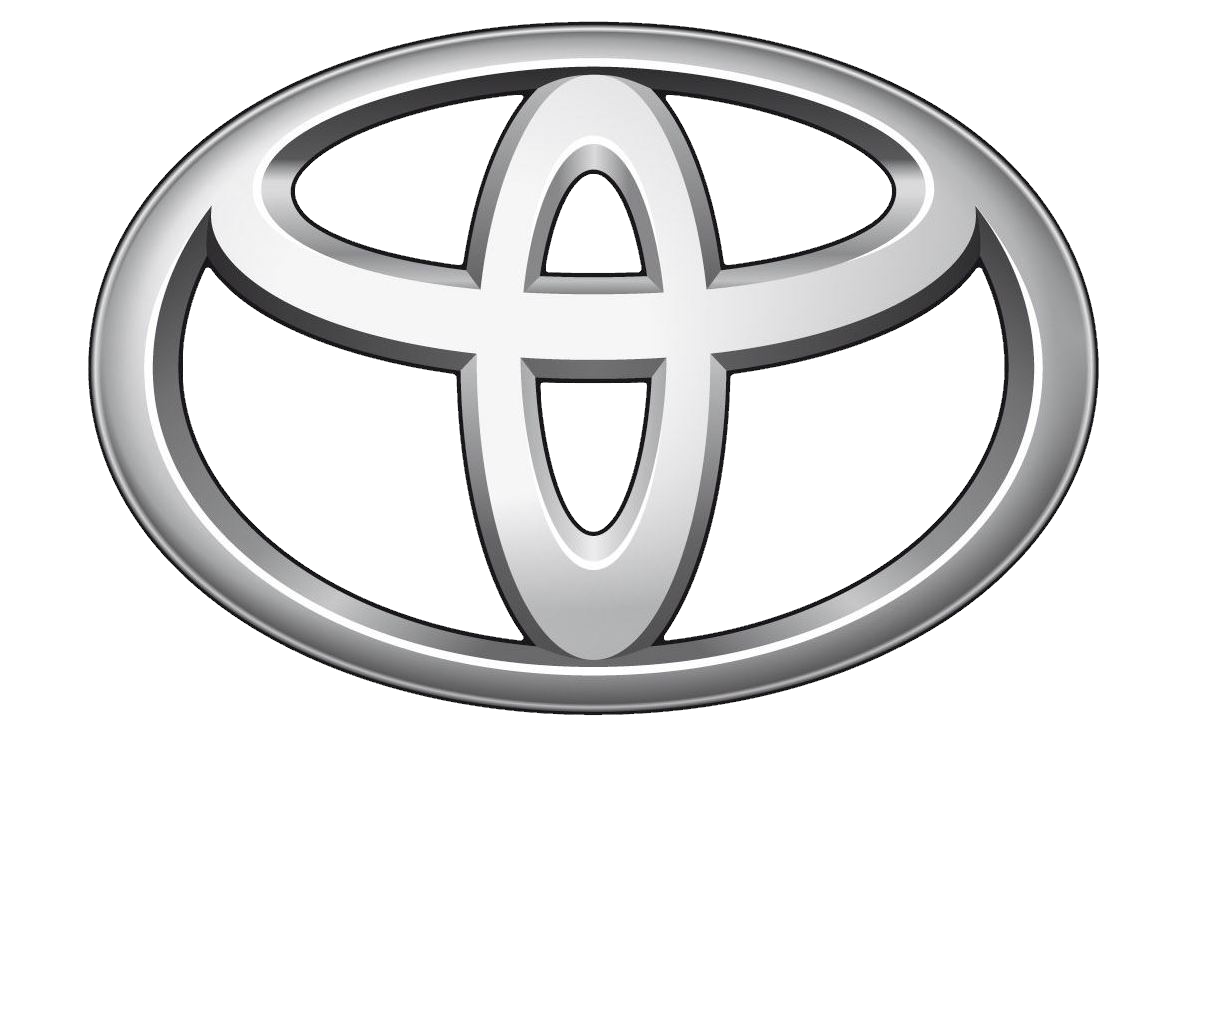 download toyota logo free png photo images and clipart freepngimg rh freepngimg com clipart toyota toyota truck clip art